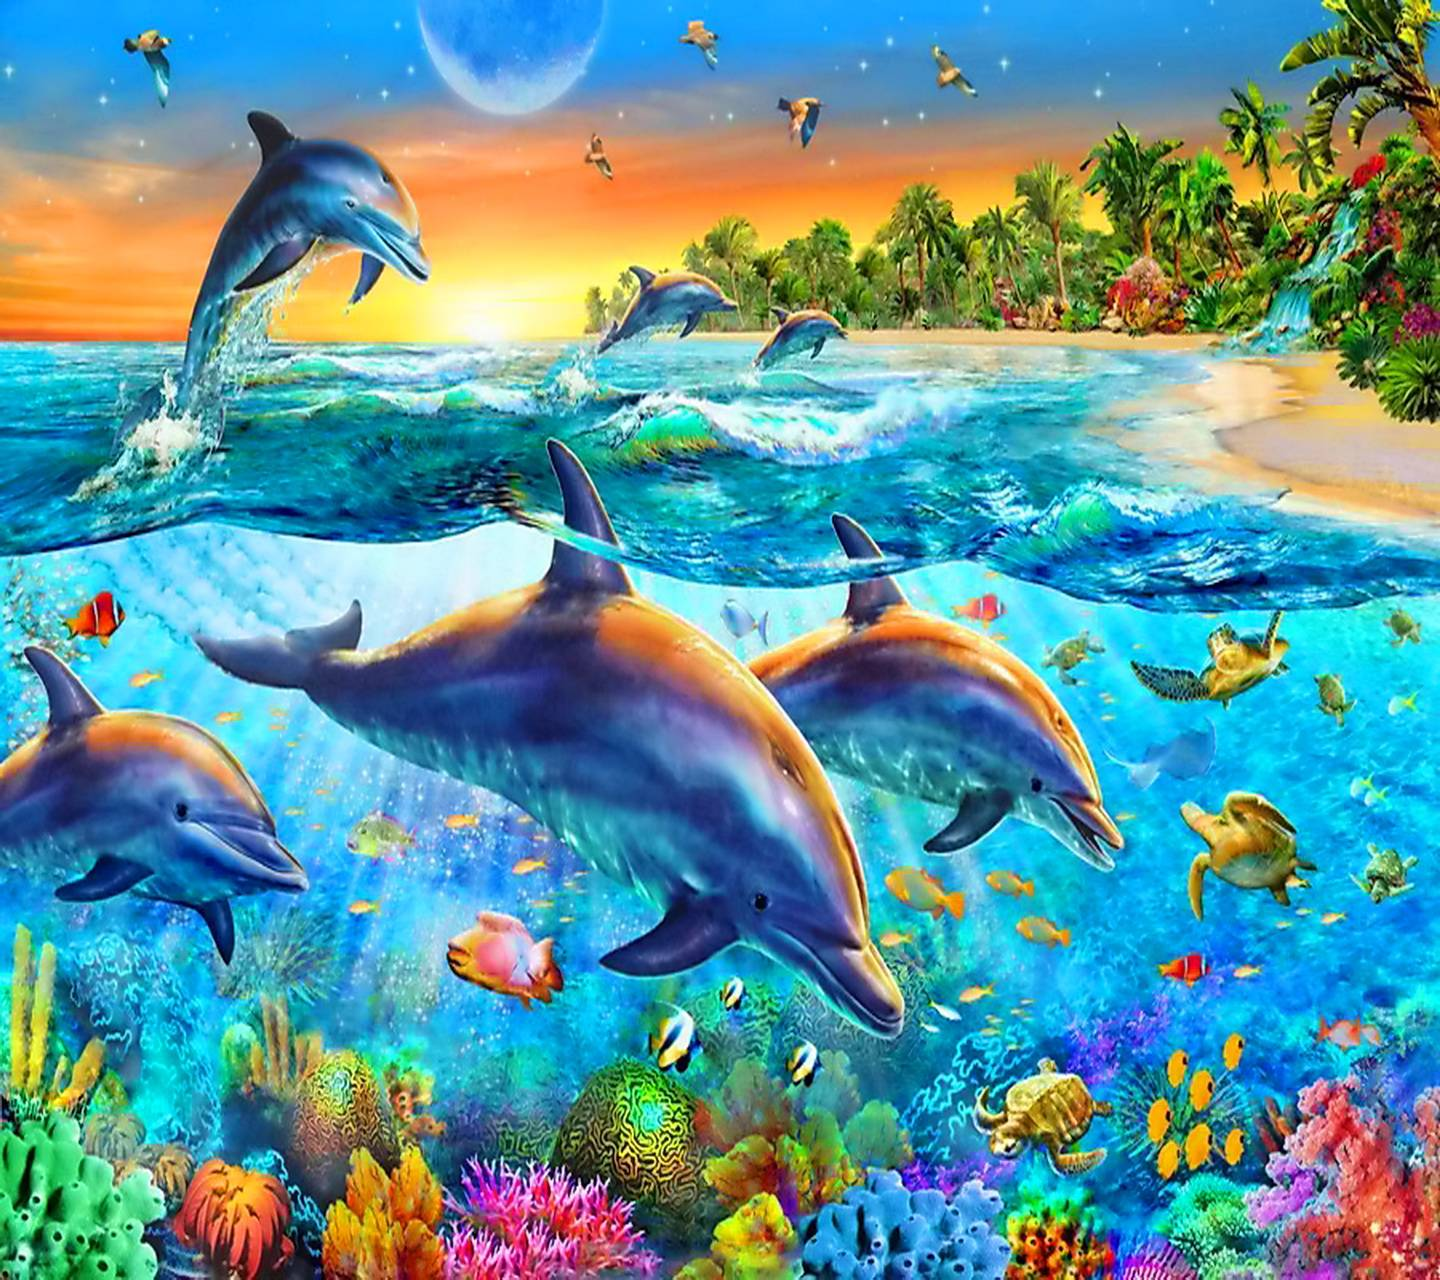 Dolphins Paradise Wallpaper by MARIKA 0d Free on ZEDGE™